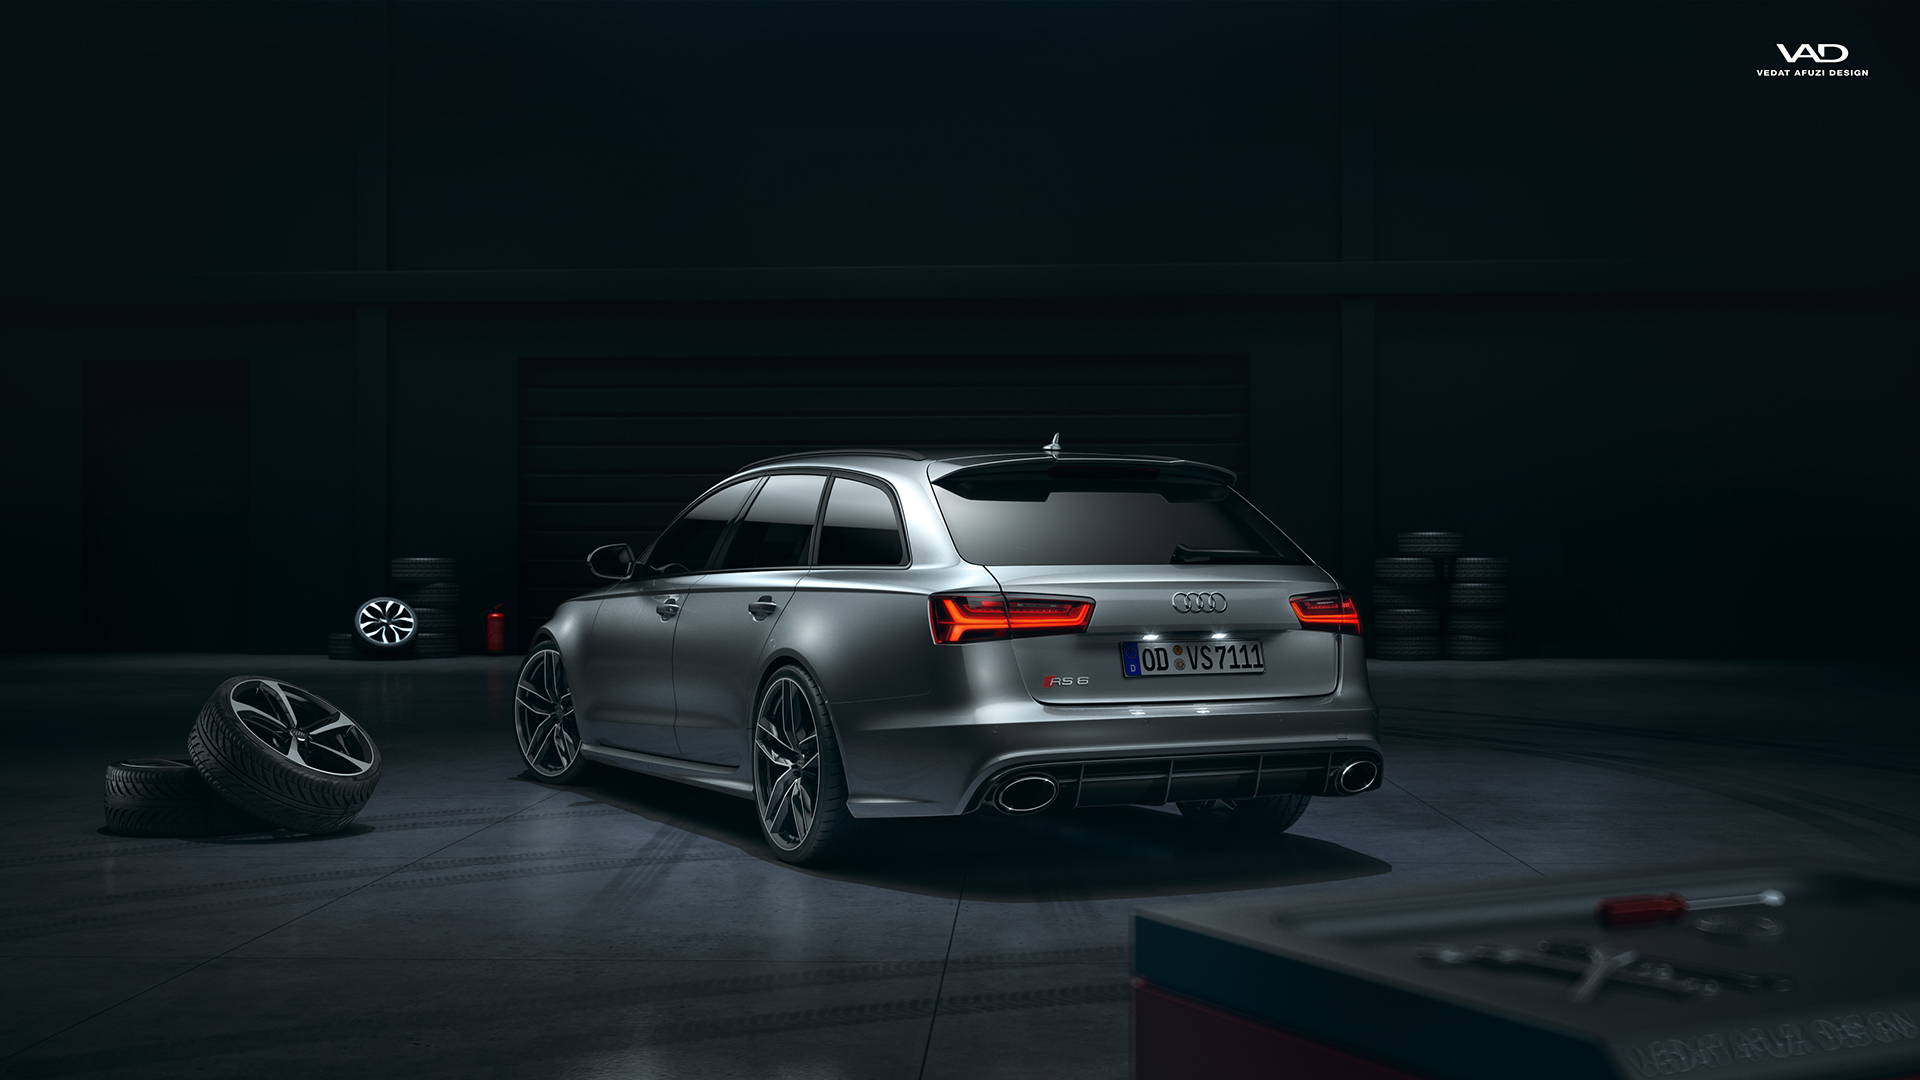 Audi A6 Wallpaper Hd The Best Automotive Photos In Hd Pt 9 14 Pics I Like